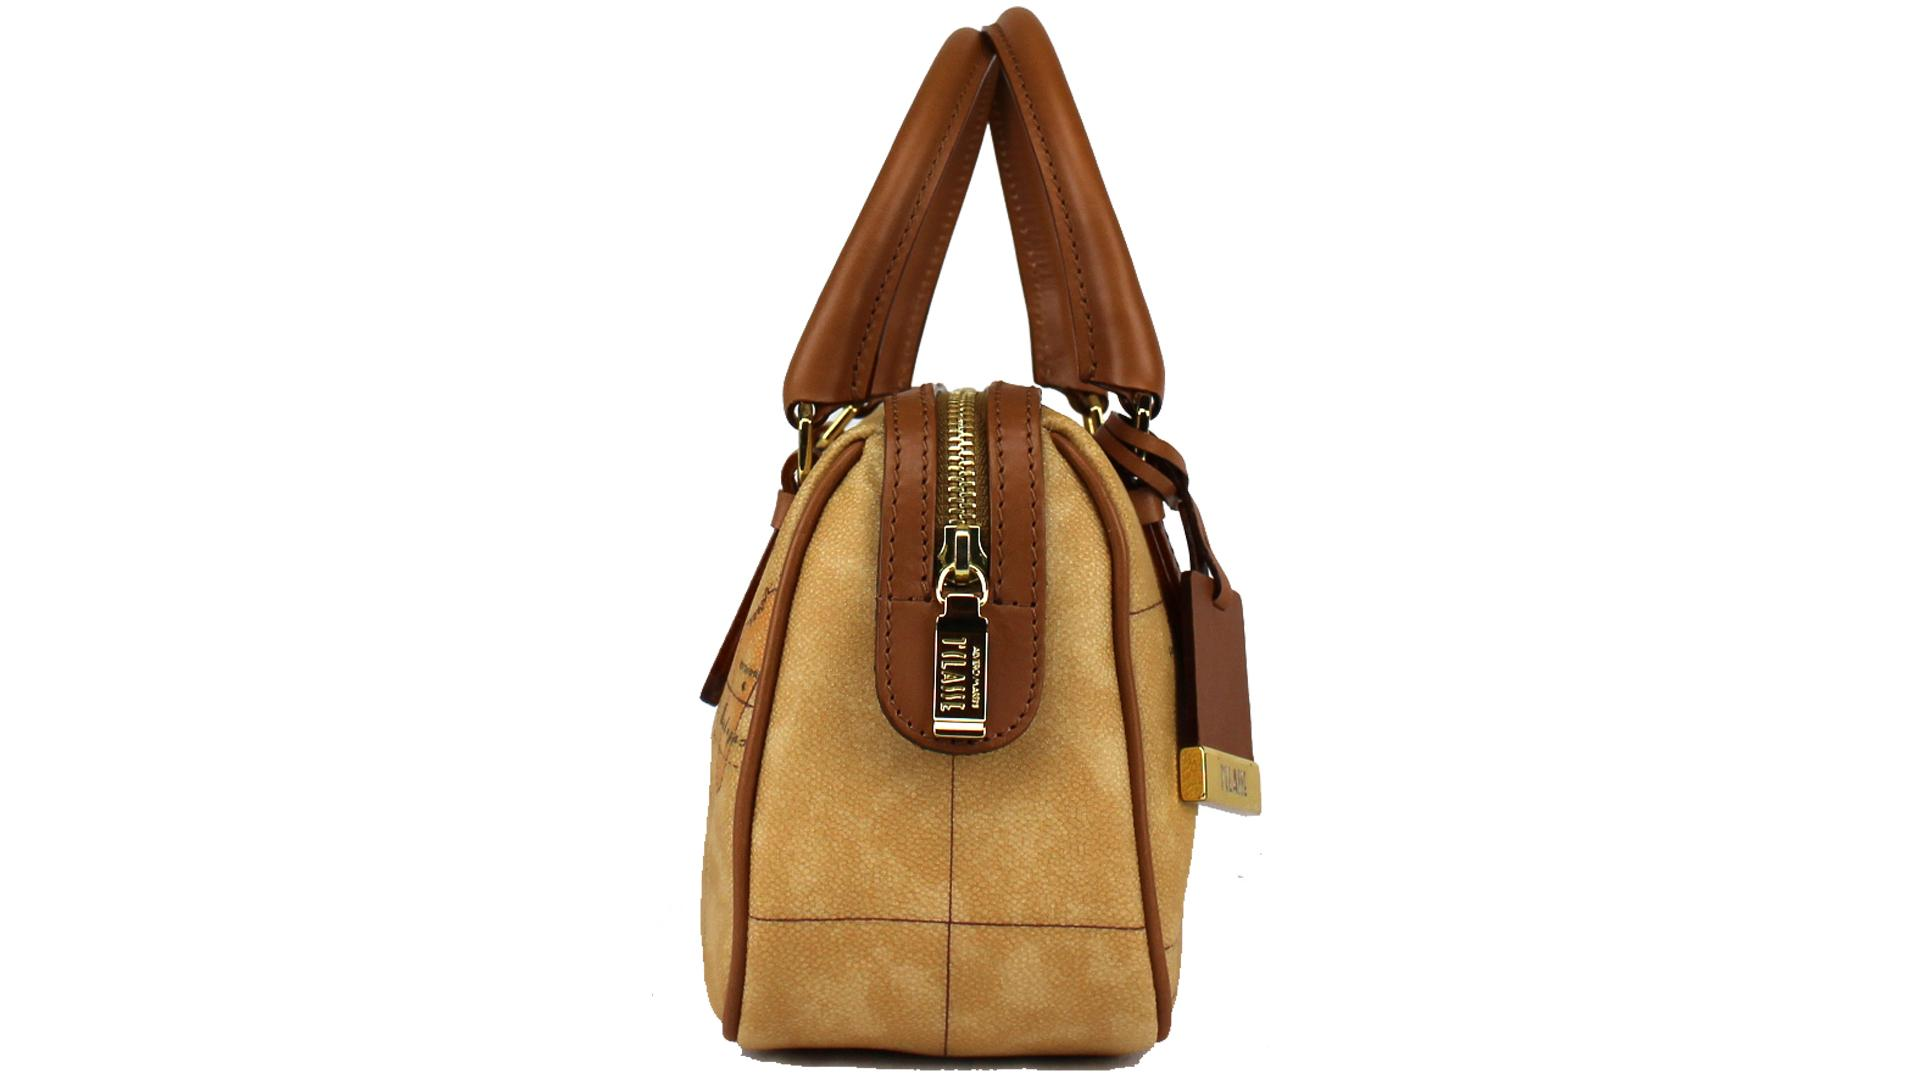 Hand and shoulder bag  Alviero Martini 1A Classe New Basic N127 6000 010 Classico